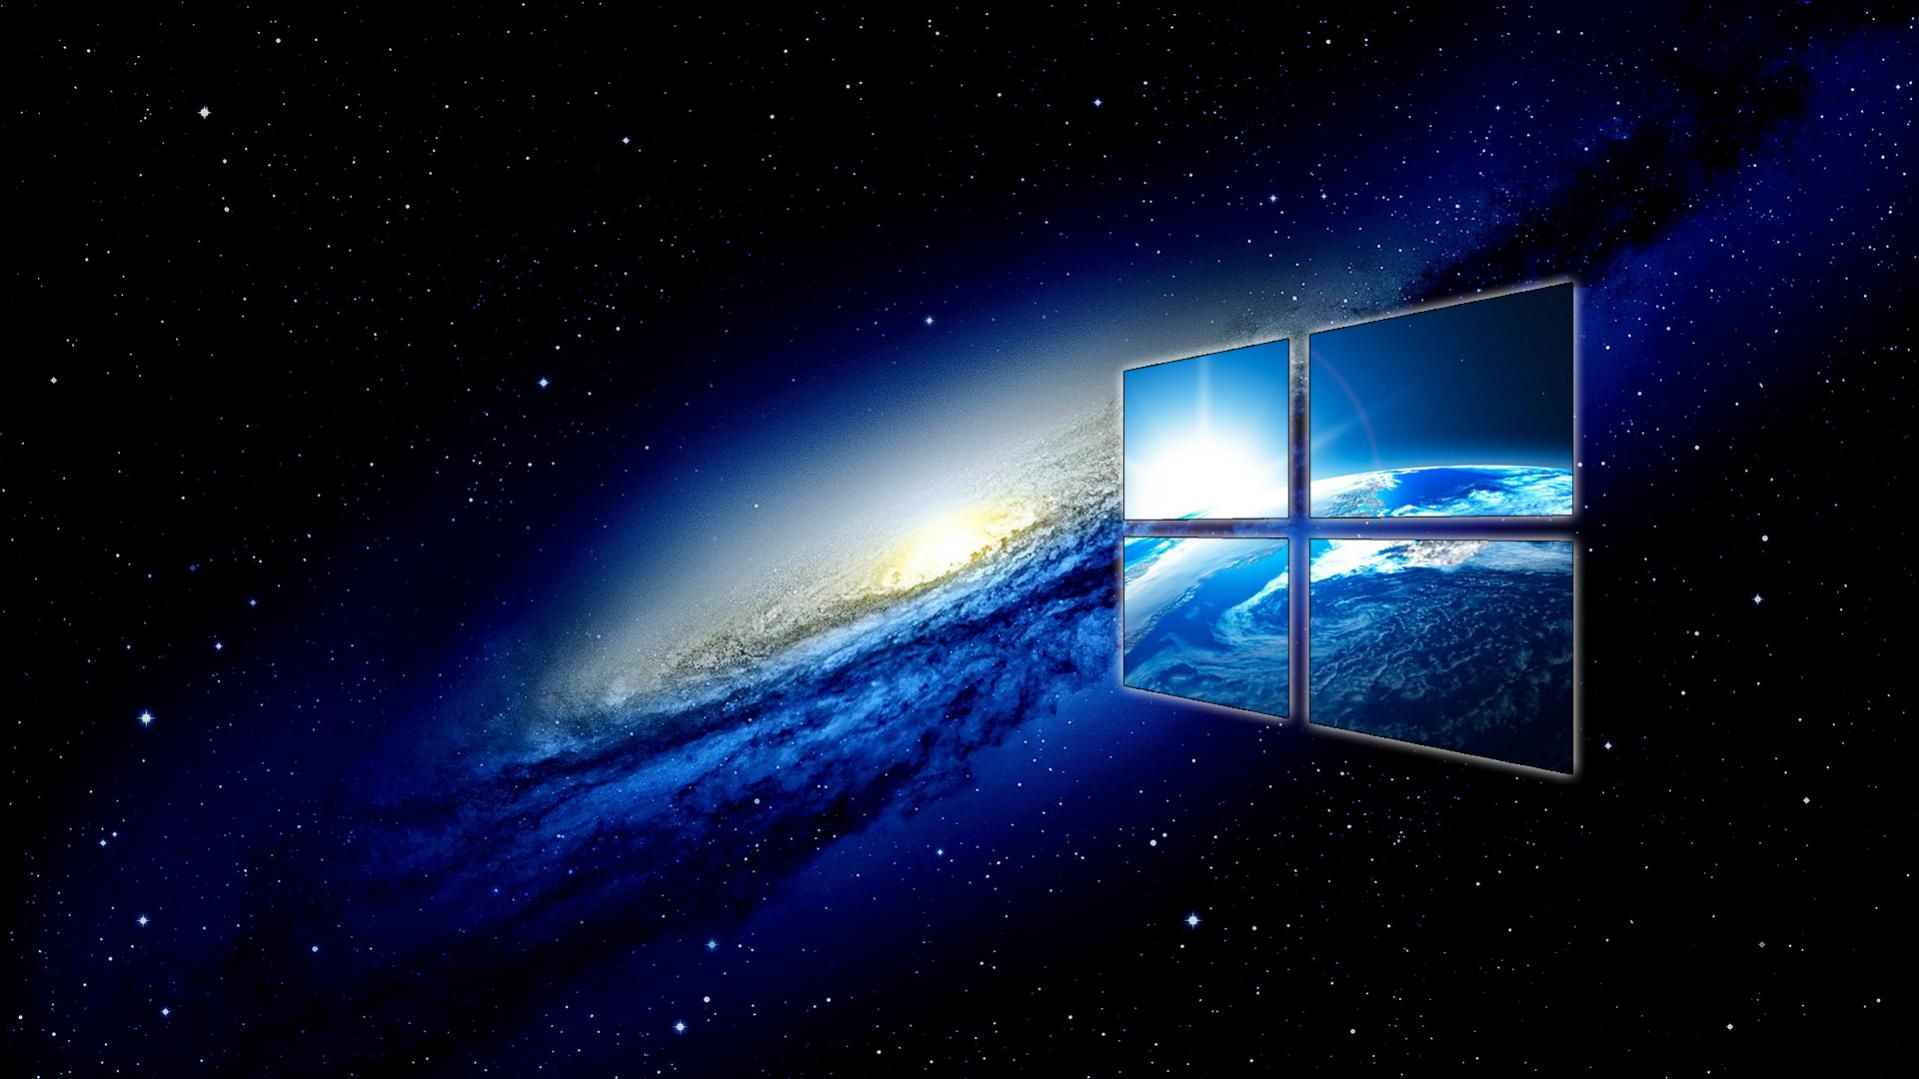 Window 10 Wallpaper Full Hd Wallpaper Windows 10 Windows 10 Background Windows Wallpaper